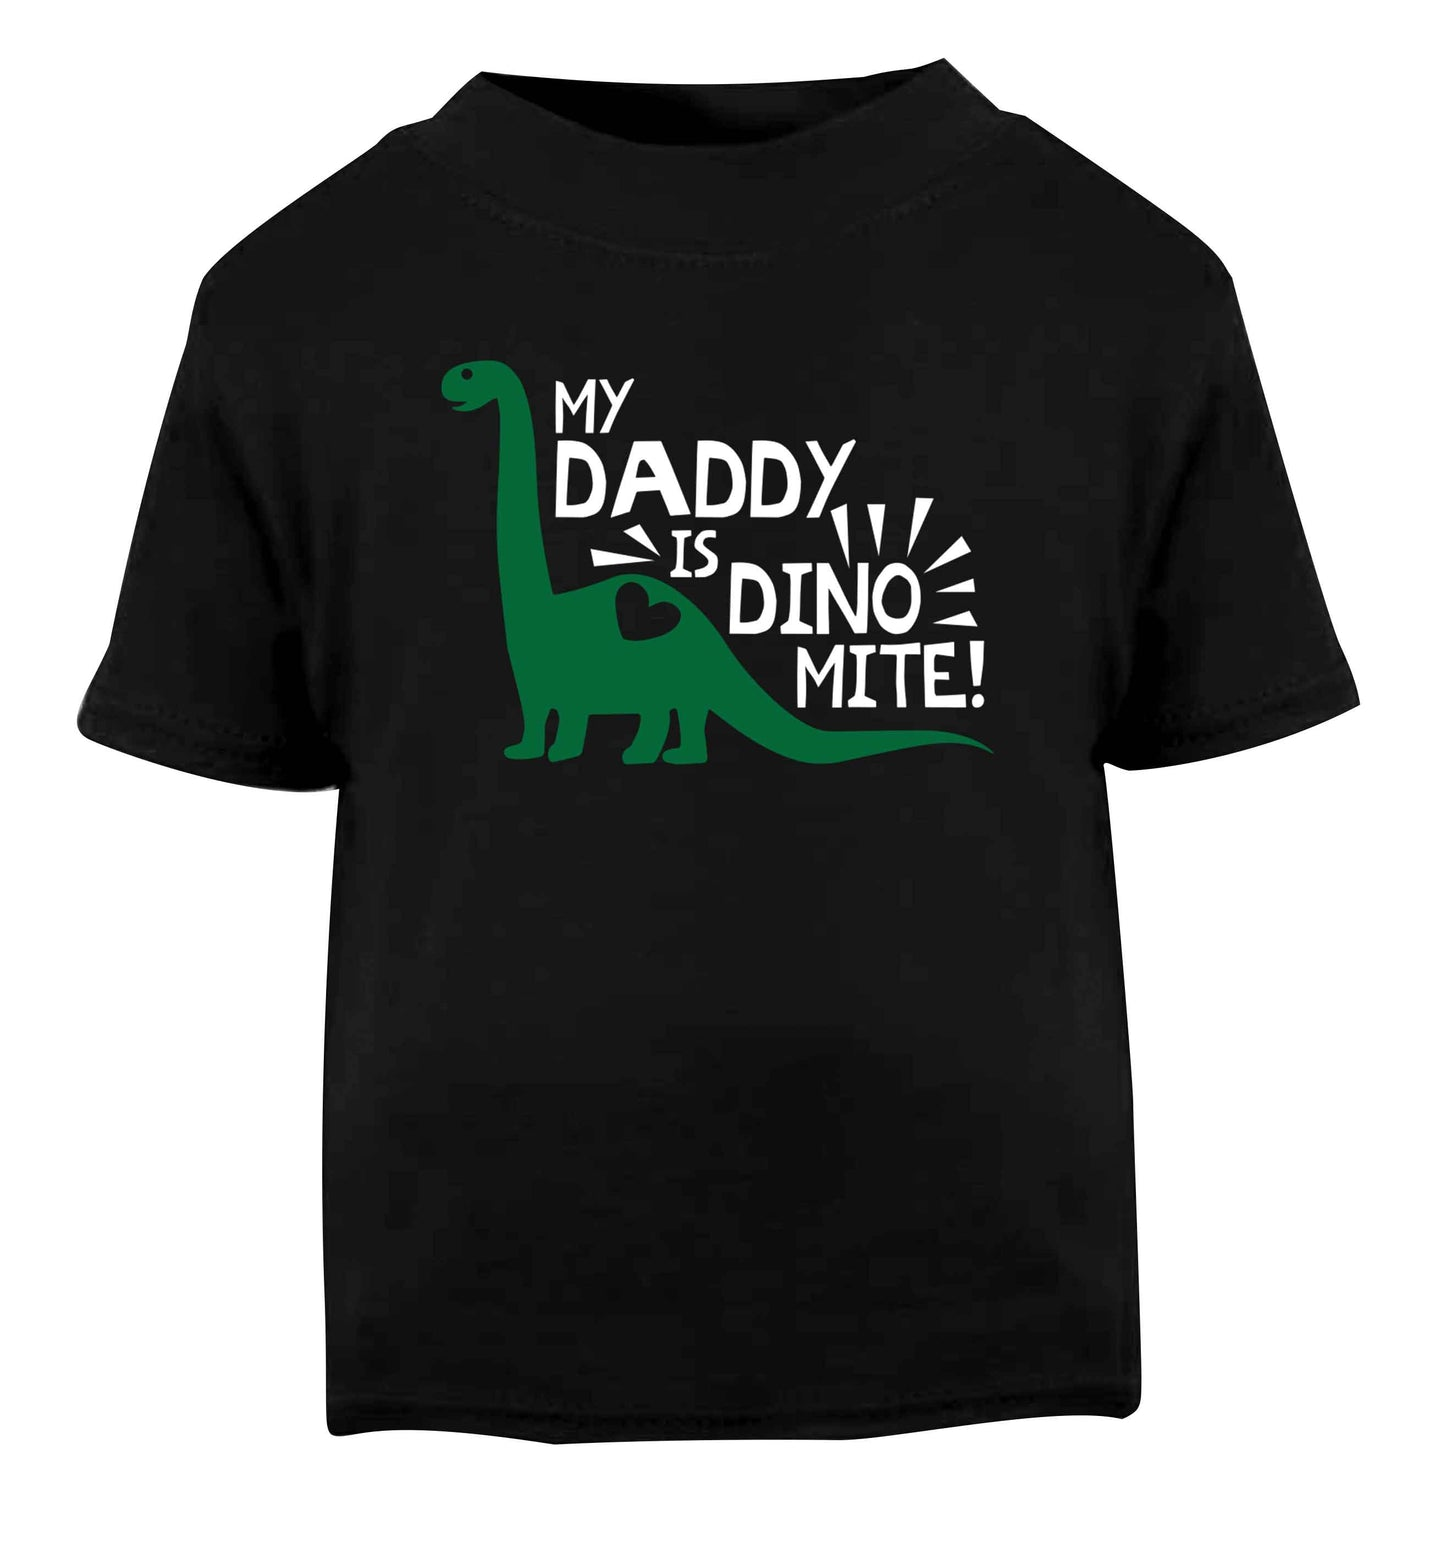 My daddy is dinomite! Black Baby Toddler Tshirt 2 years